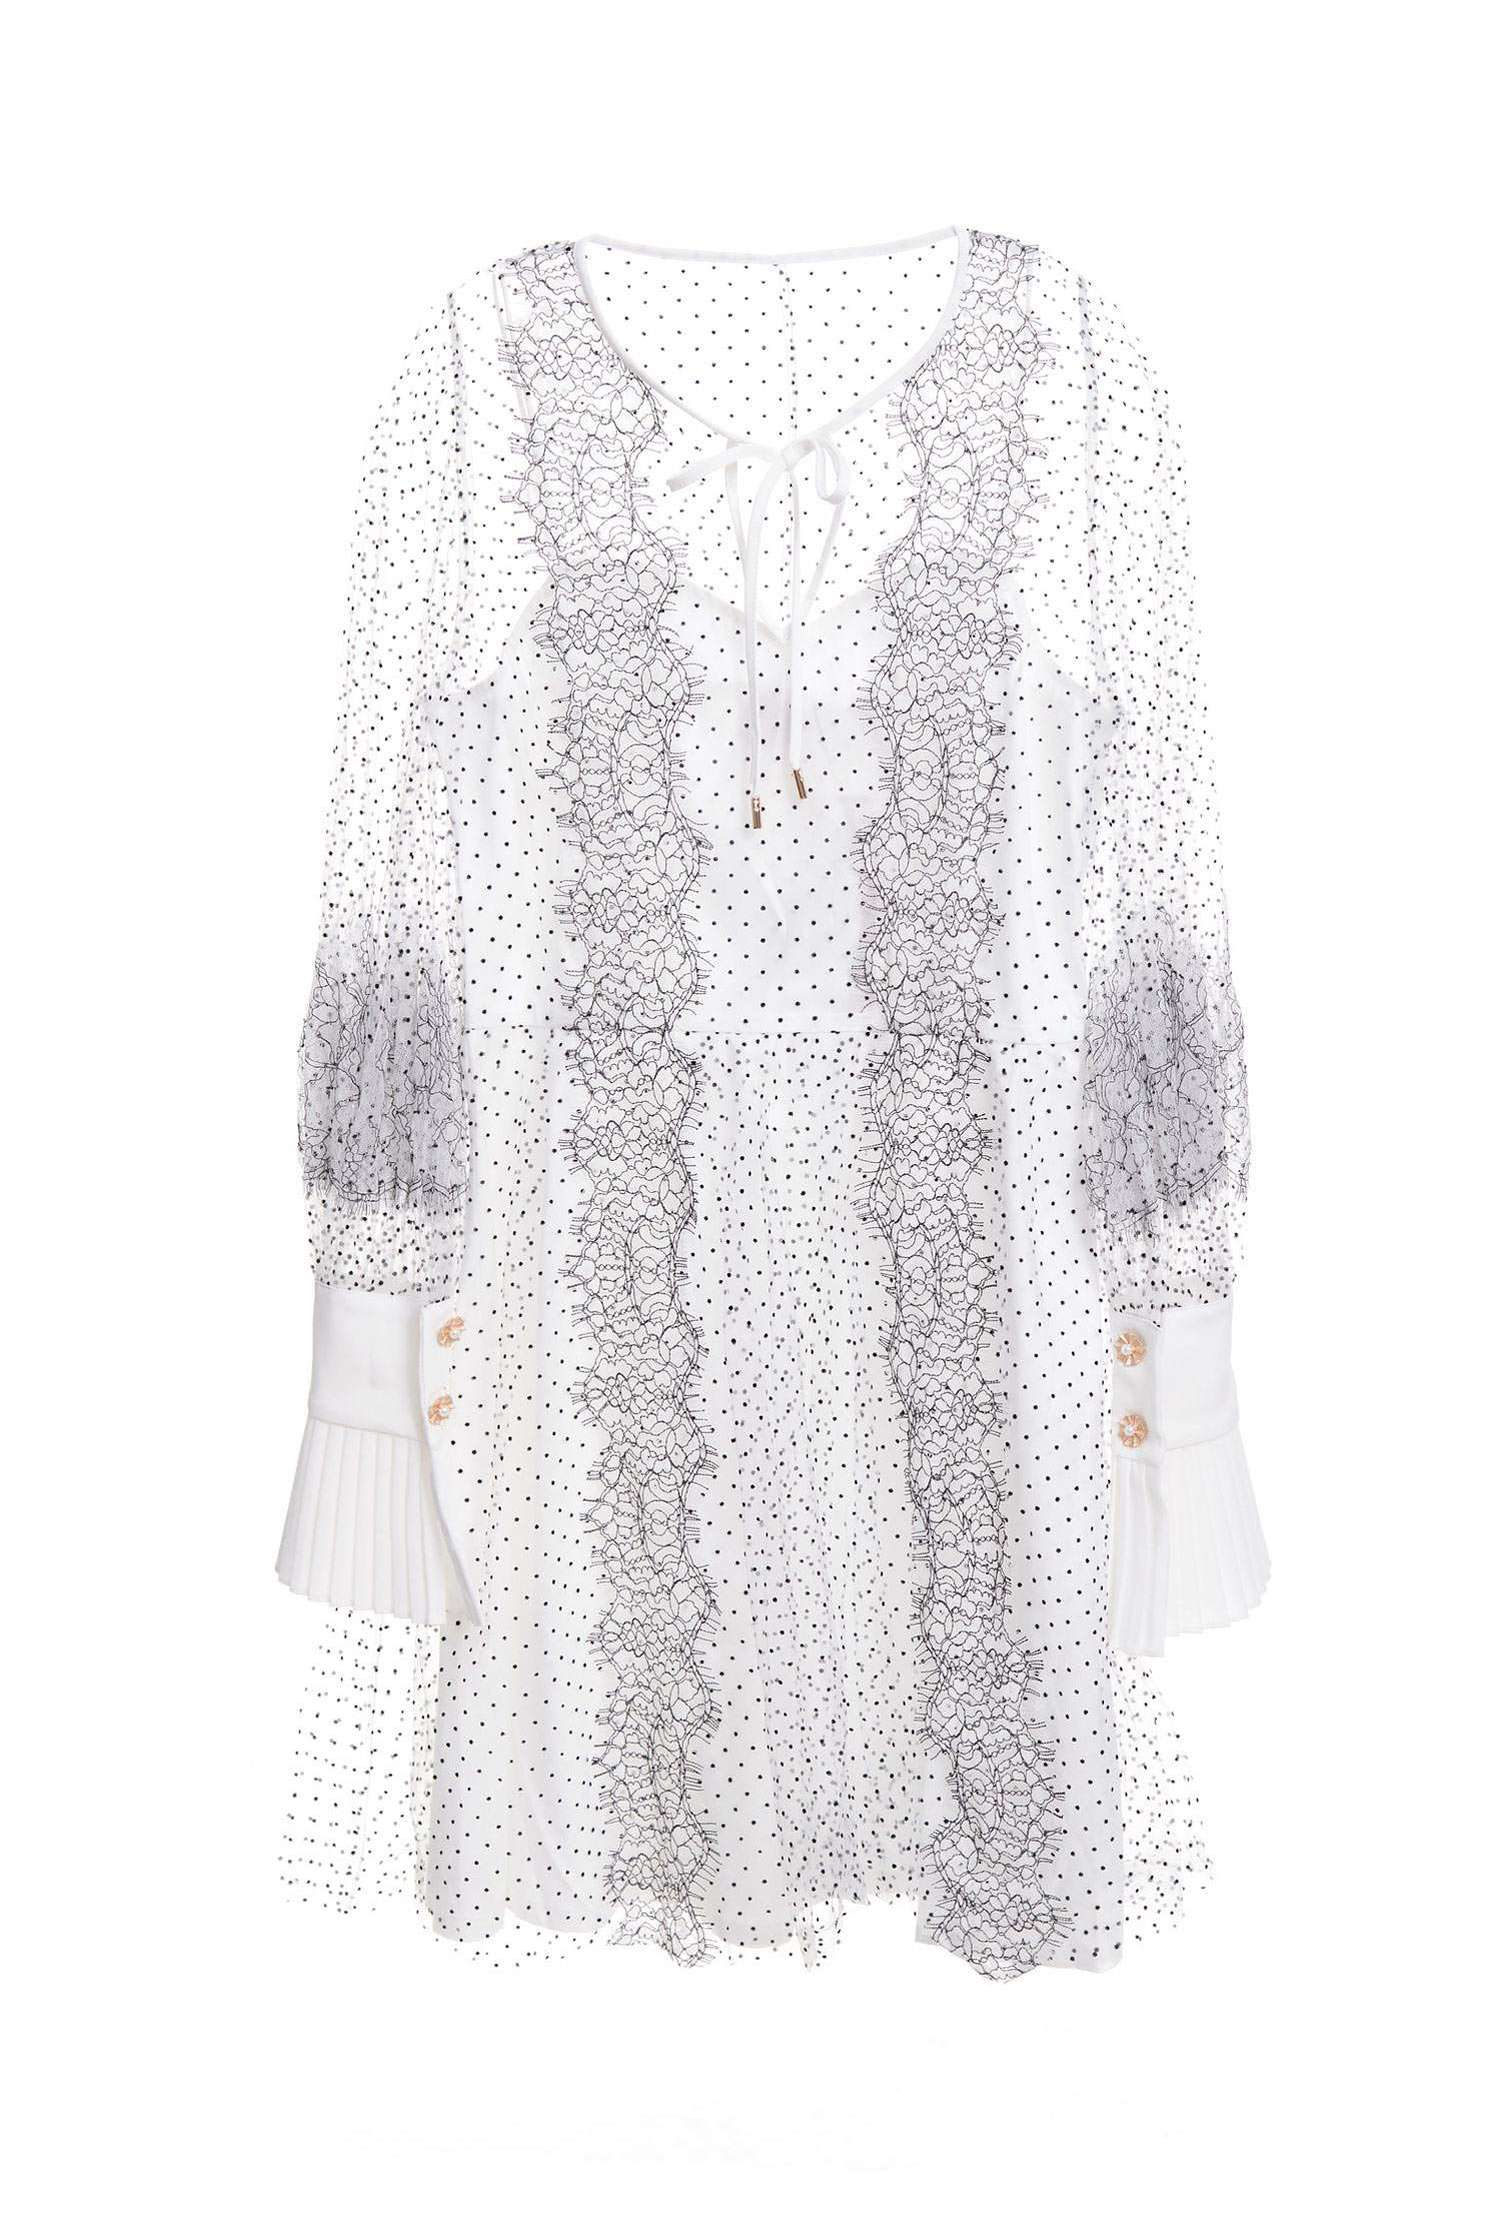 Classic sleeves, translucent long-sleeved dress